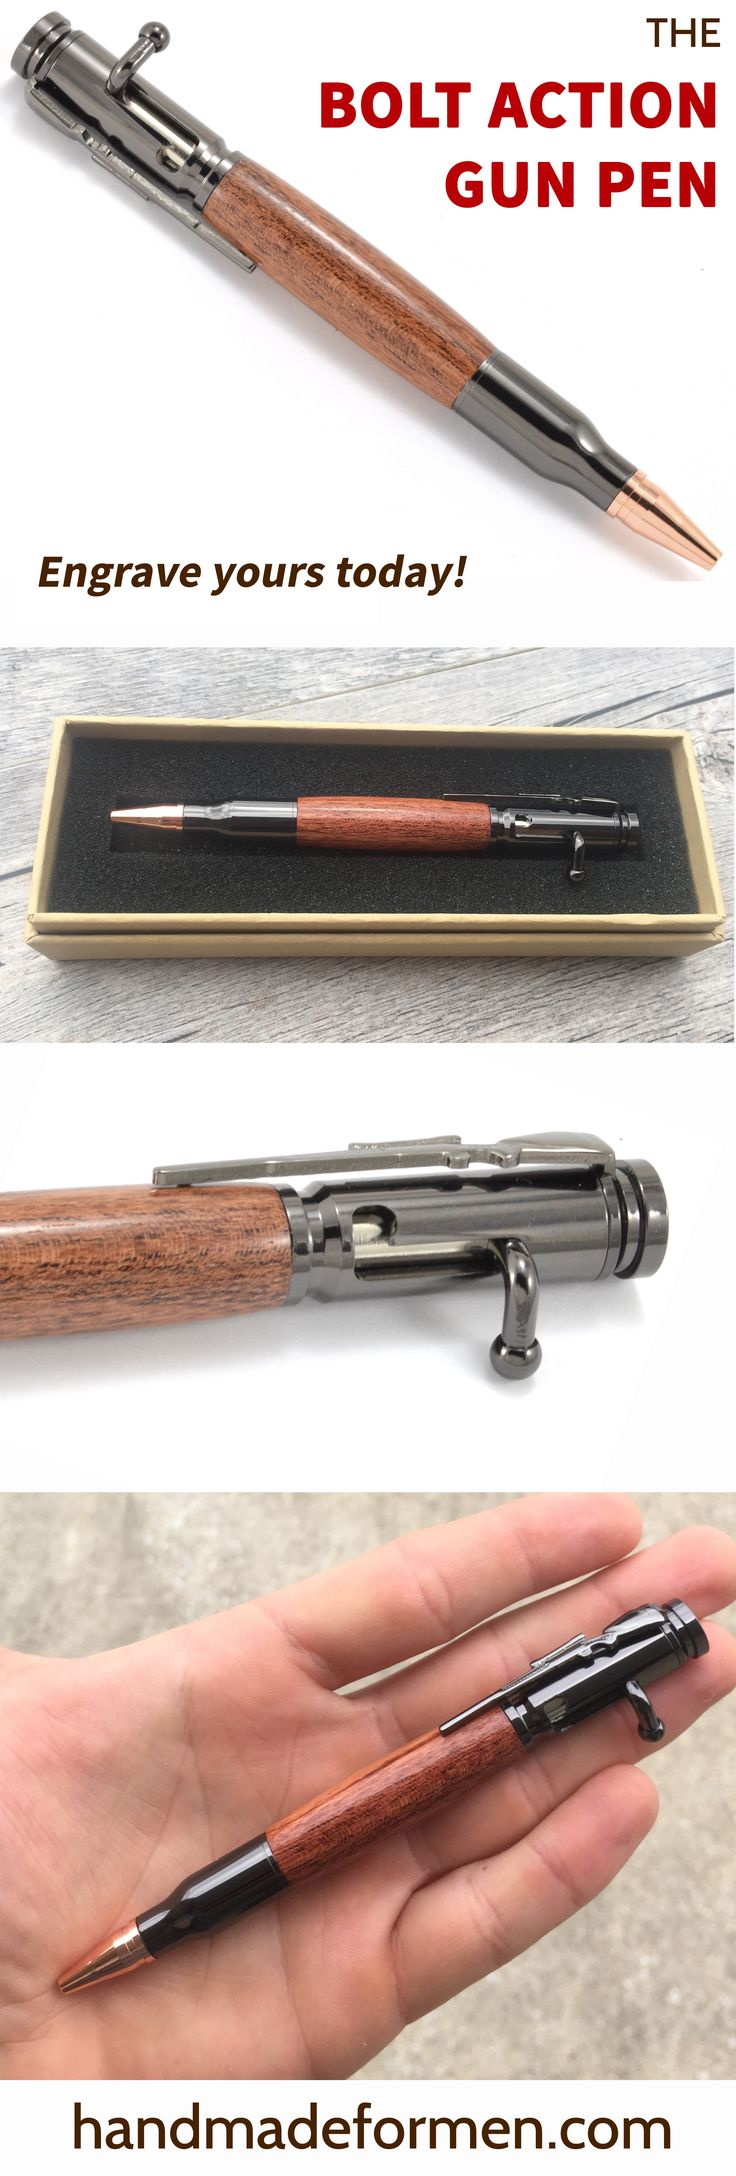 Whether you're a history buff, gun lover, hunter, or you just like awesome pens, this is the one for you. Our Bolt Action Bullet pens open like a bolt action rifle, have a .30-06 caliber bullet tip, a